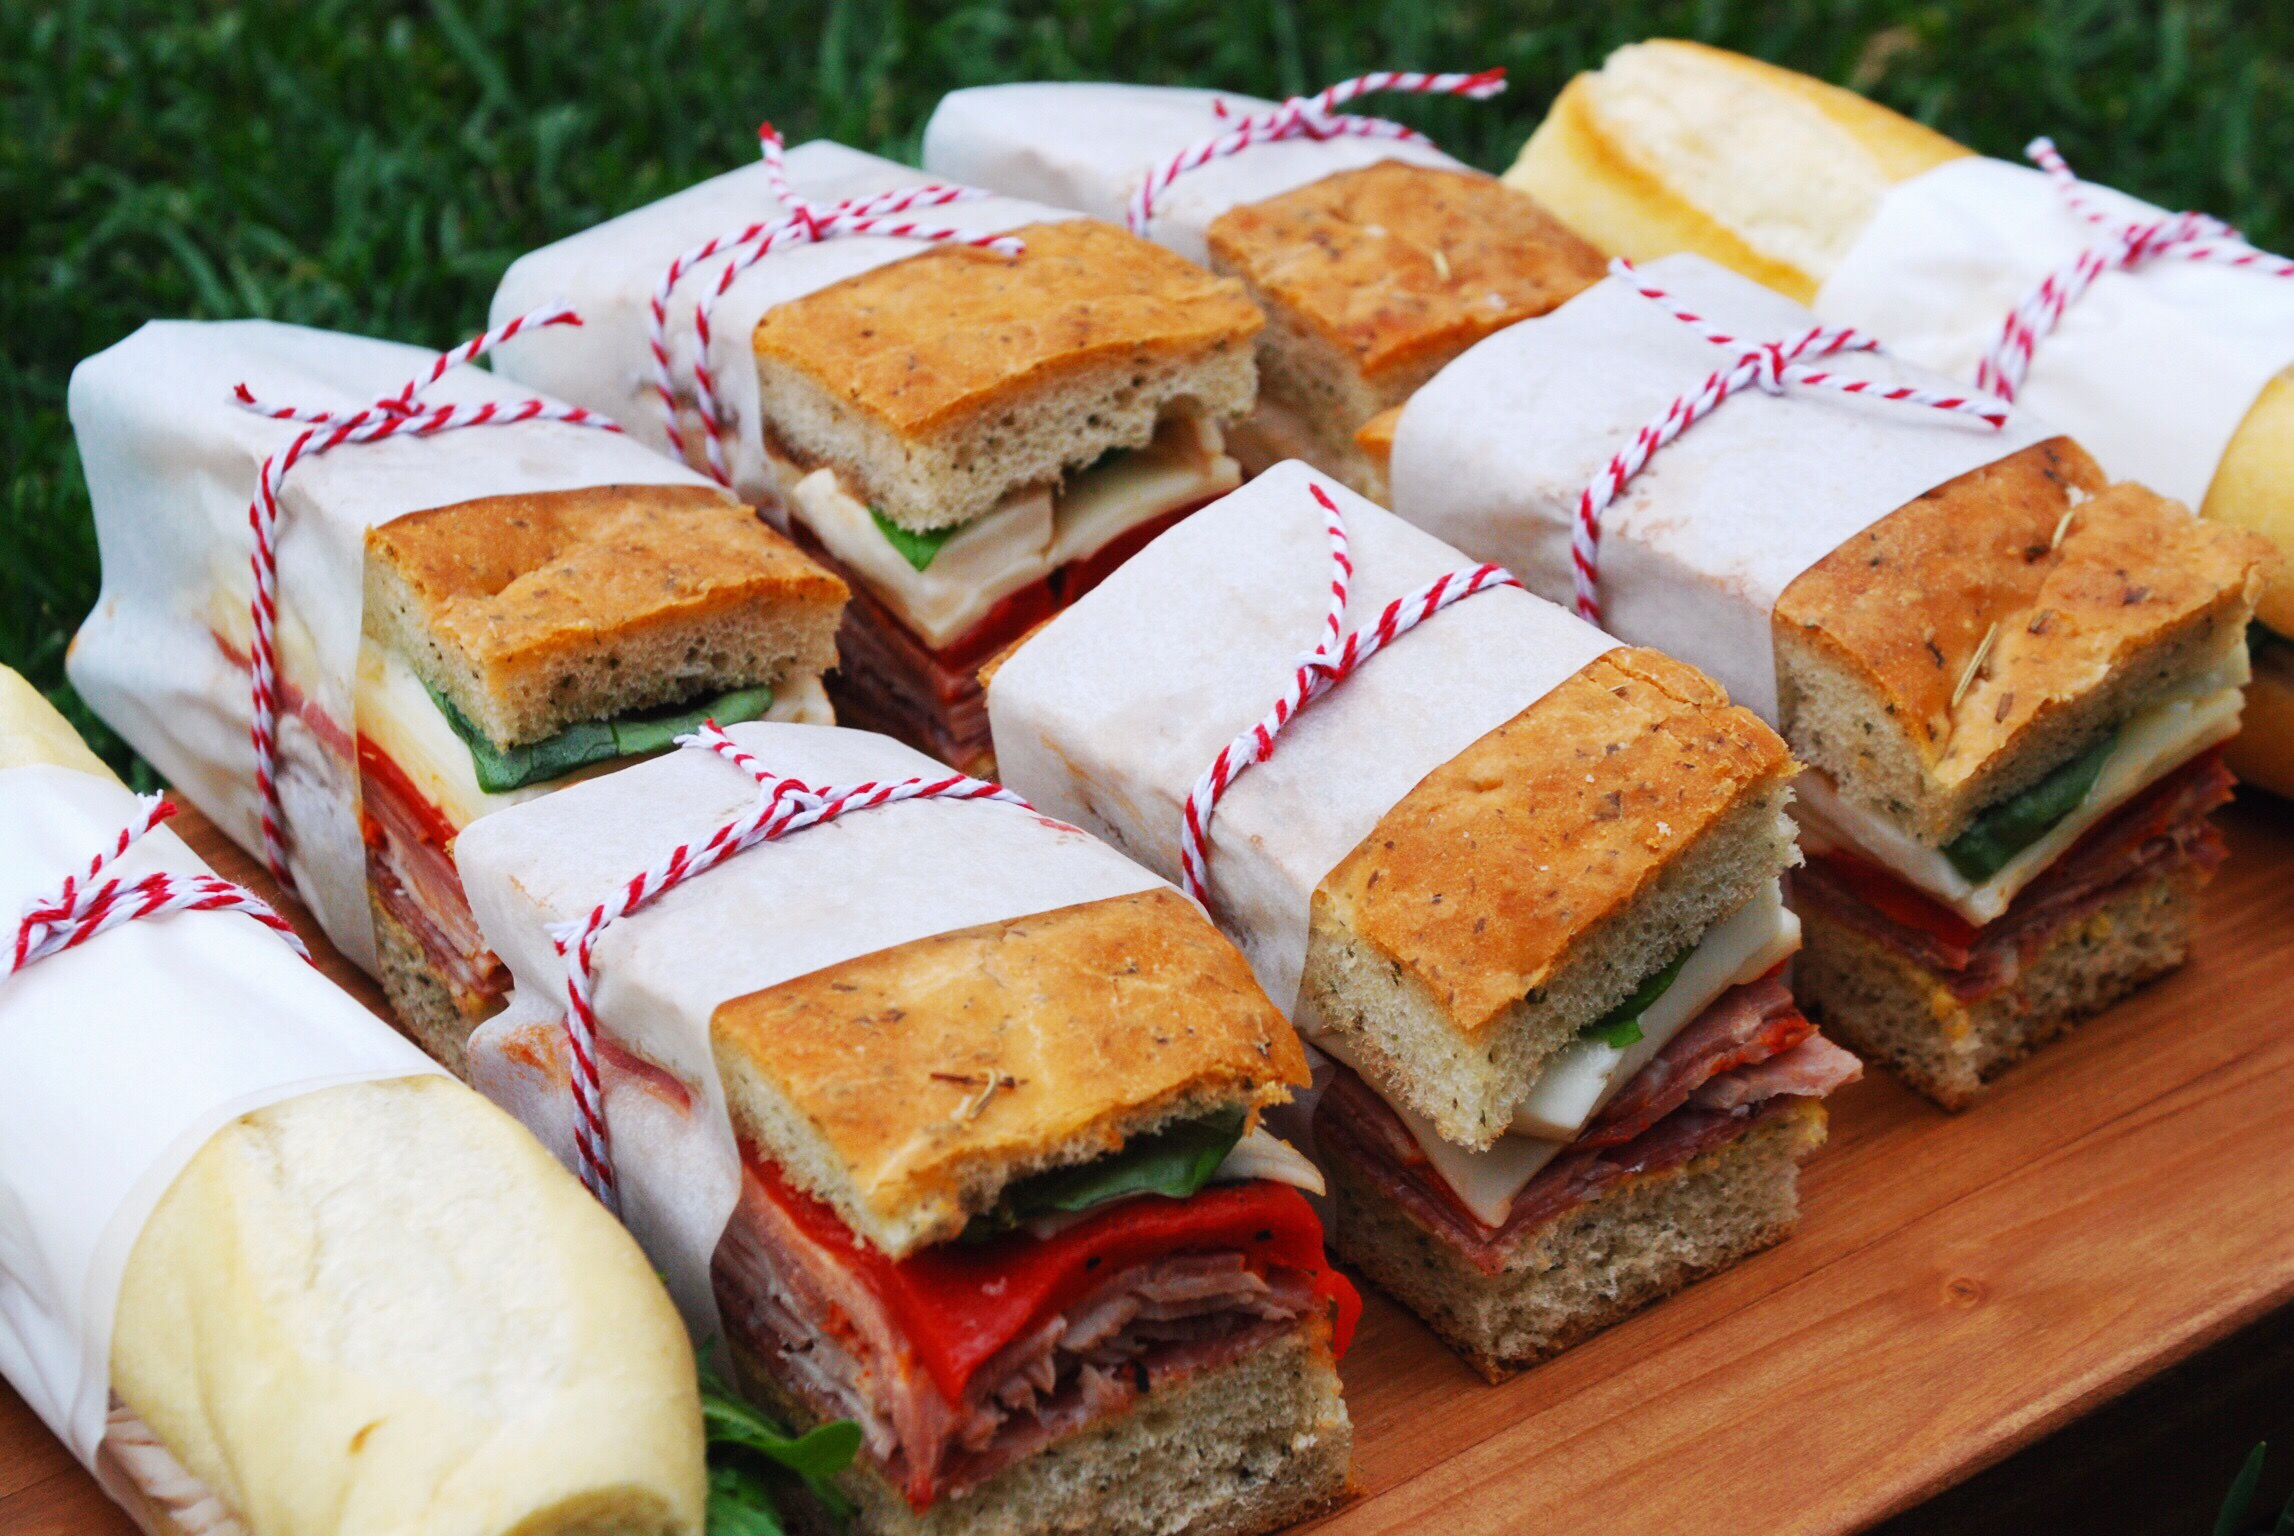 Individually wrapped picnic sandwich